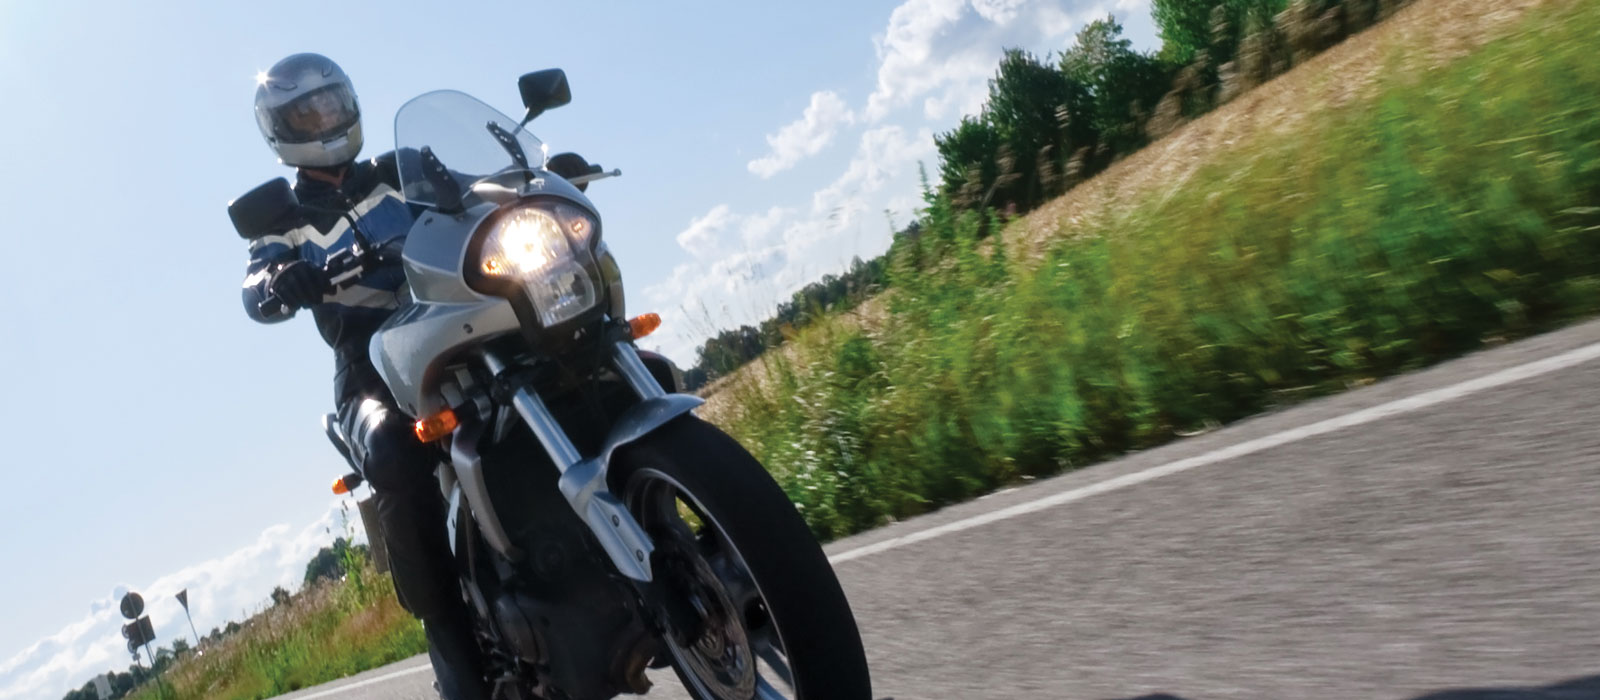 StreetRider, Best Motorcycle Insurance Rates, Ontario